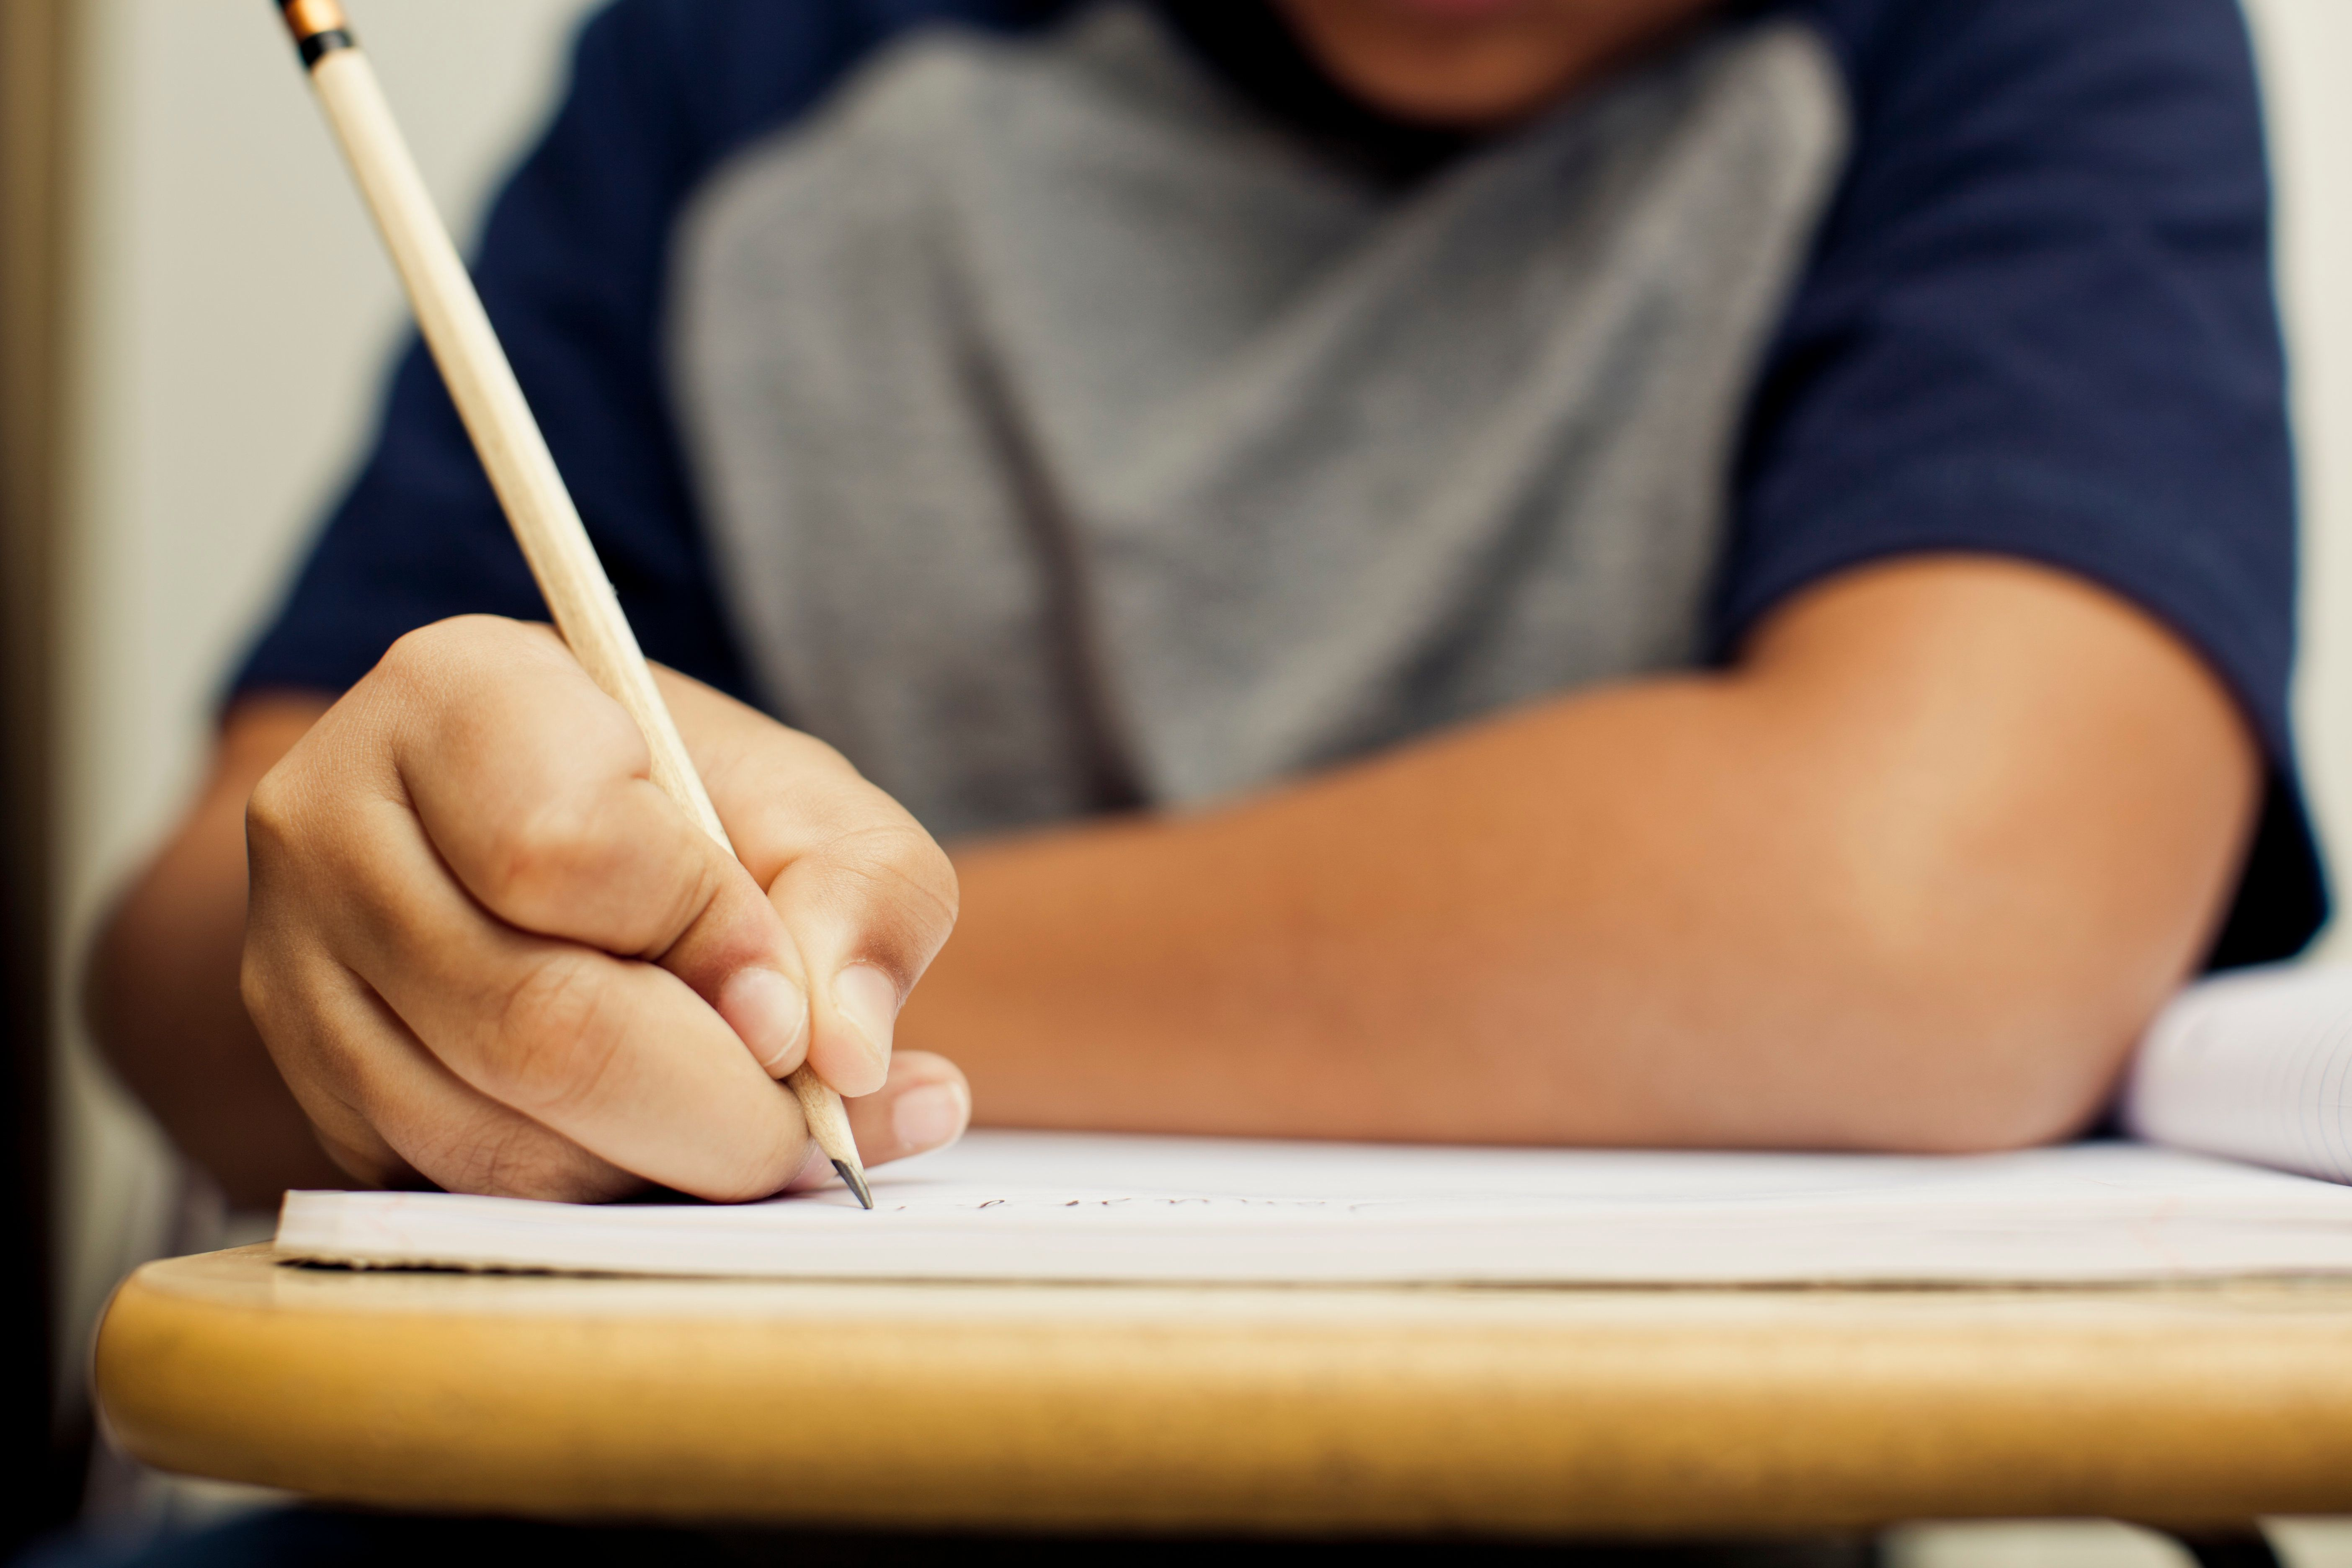 """Dysgraphia or""""disabled handwriting""""often accompanies other conditions, like dyslexia, dyspraxia, ADHD"""